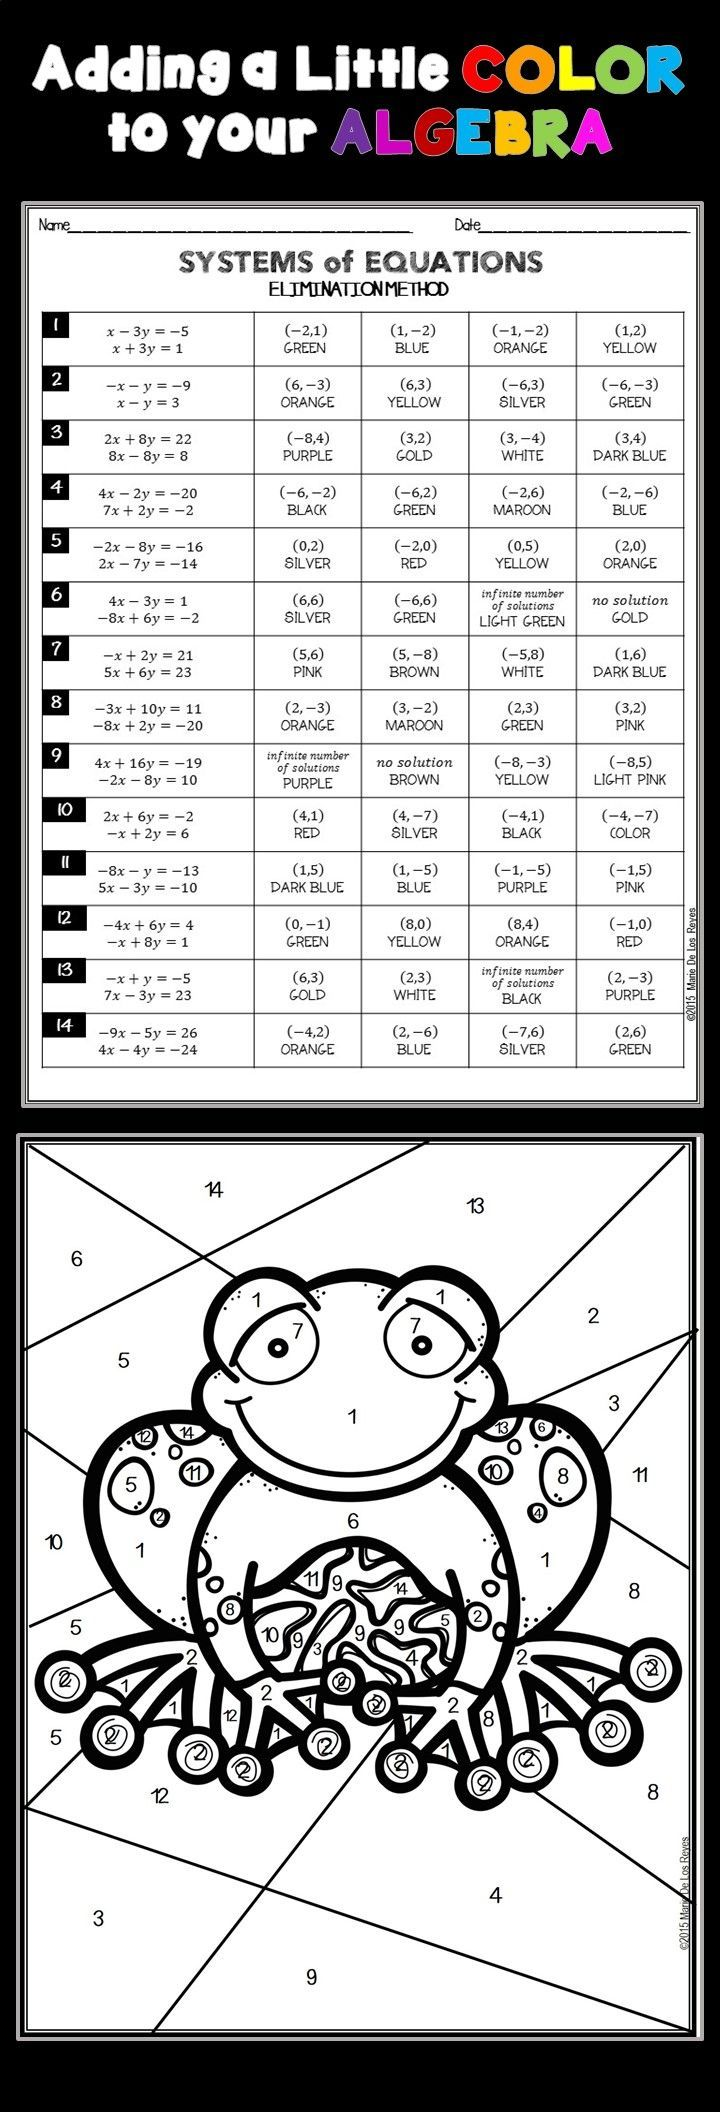 Students will practice the ELIMINATION METHOD for SOLVING SYSTEMS of EQUATIONS in this coloring activity resource. There are 14 problems which become progressively more challenging with some requiring no multiplication, multiplication to one or multiplication to both equations in the system in order to solve.